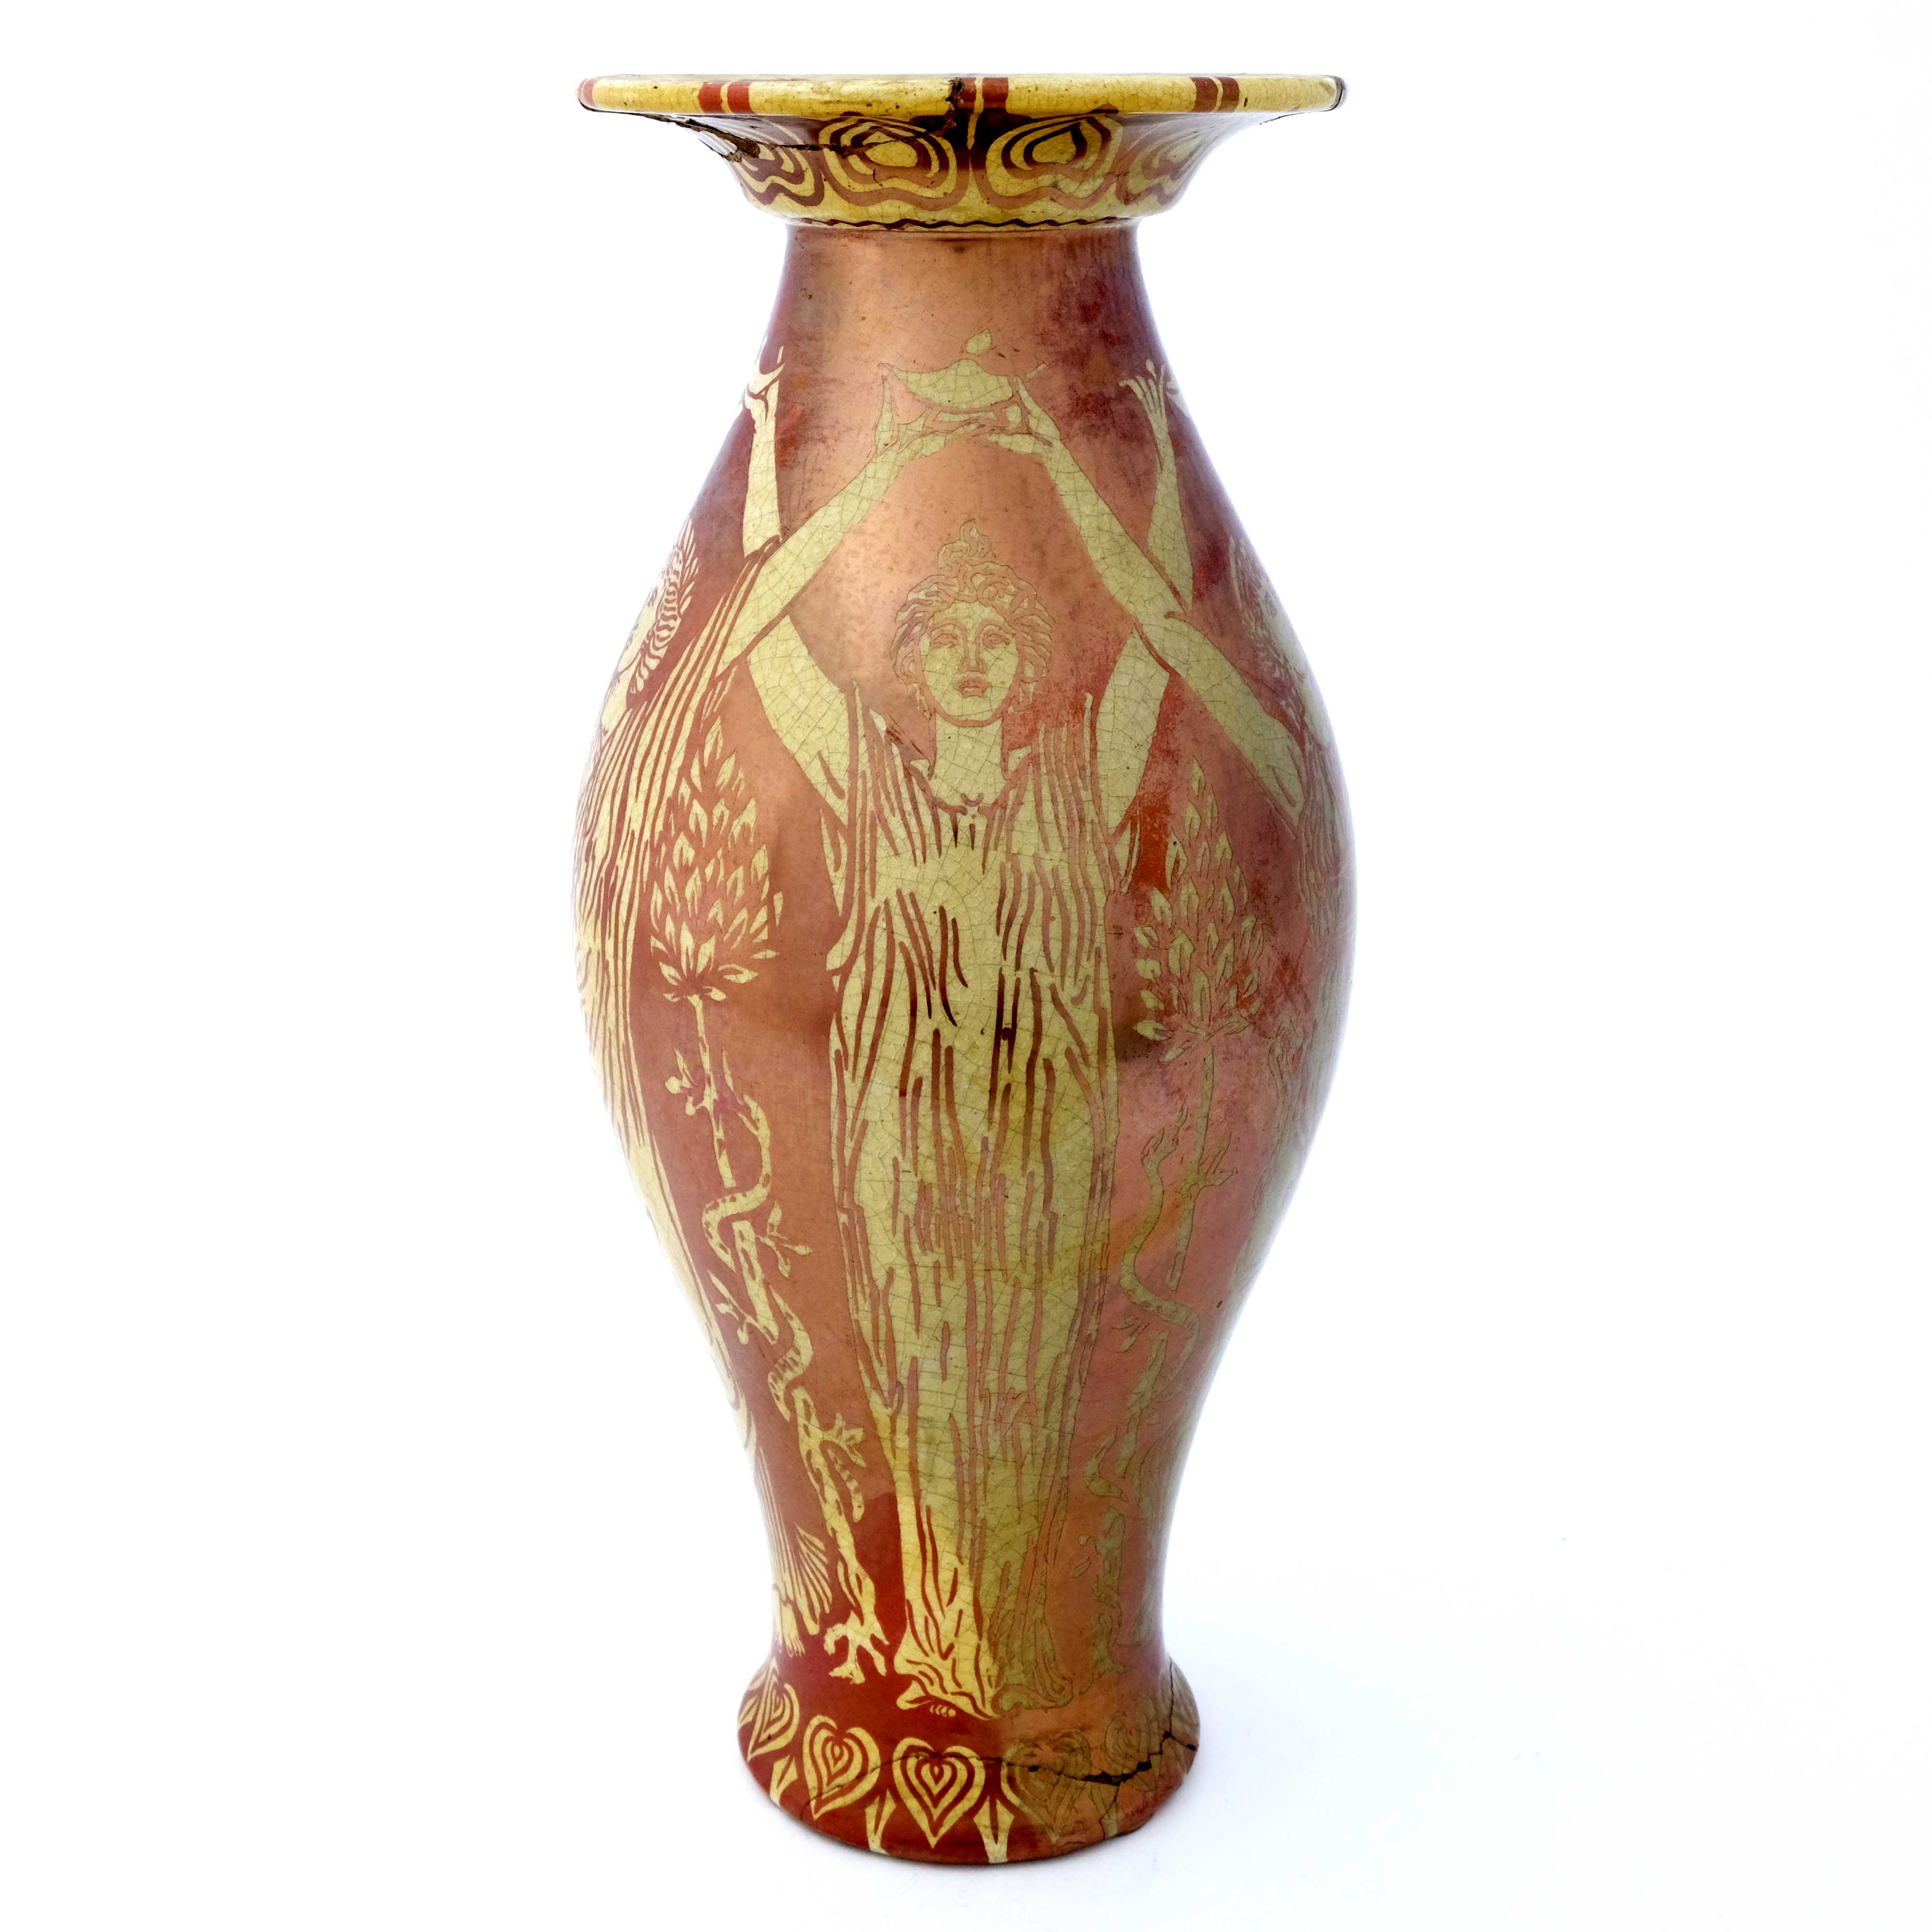 Walter Crane for Maw and Co., a red lustre vase, c - Image 3 of 5